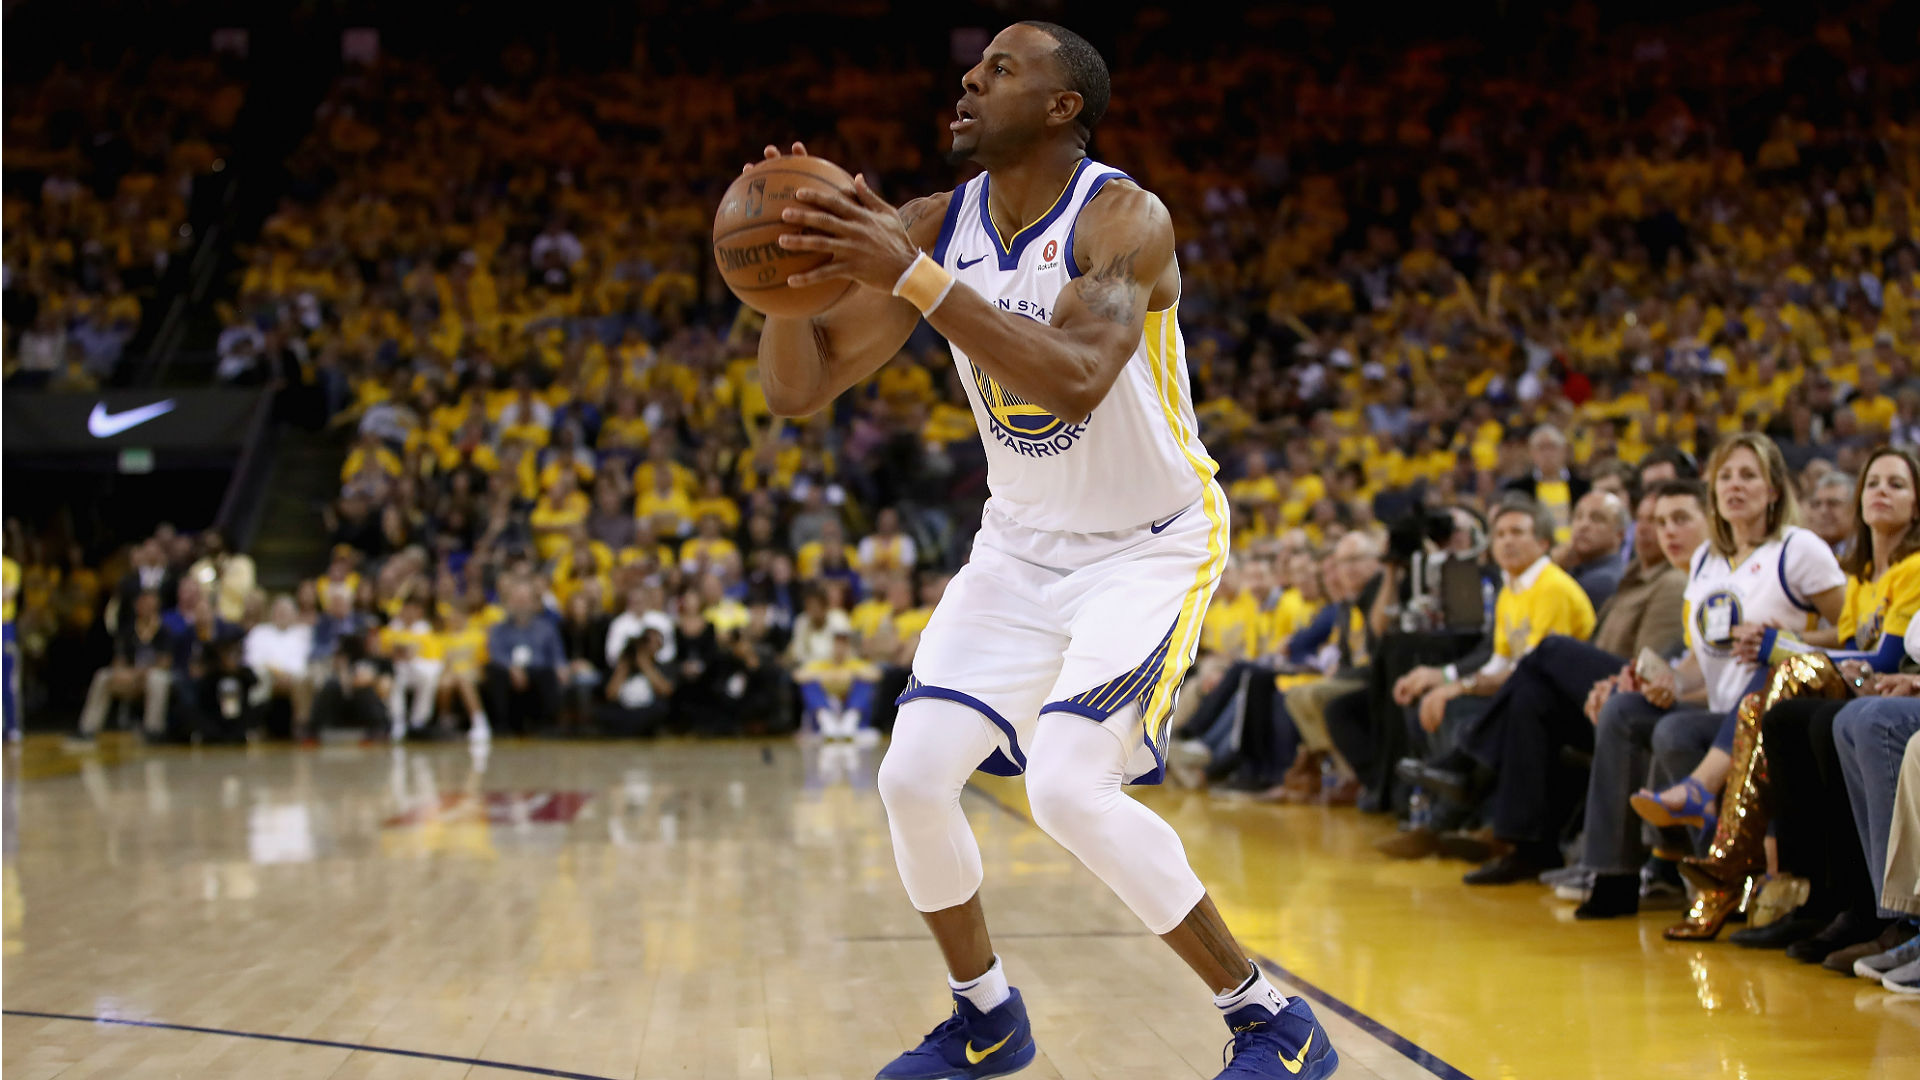 Stephen Curry's Incredible 3-Point Shooting Leads Warriors to Game 2 Win